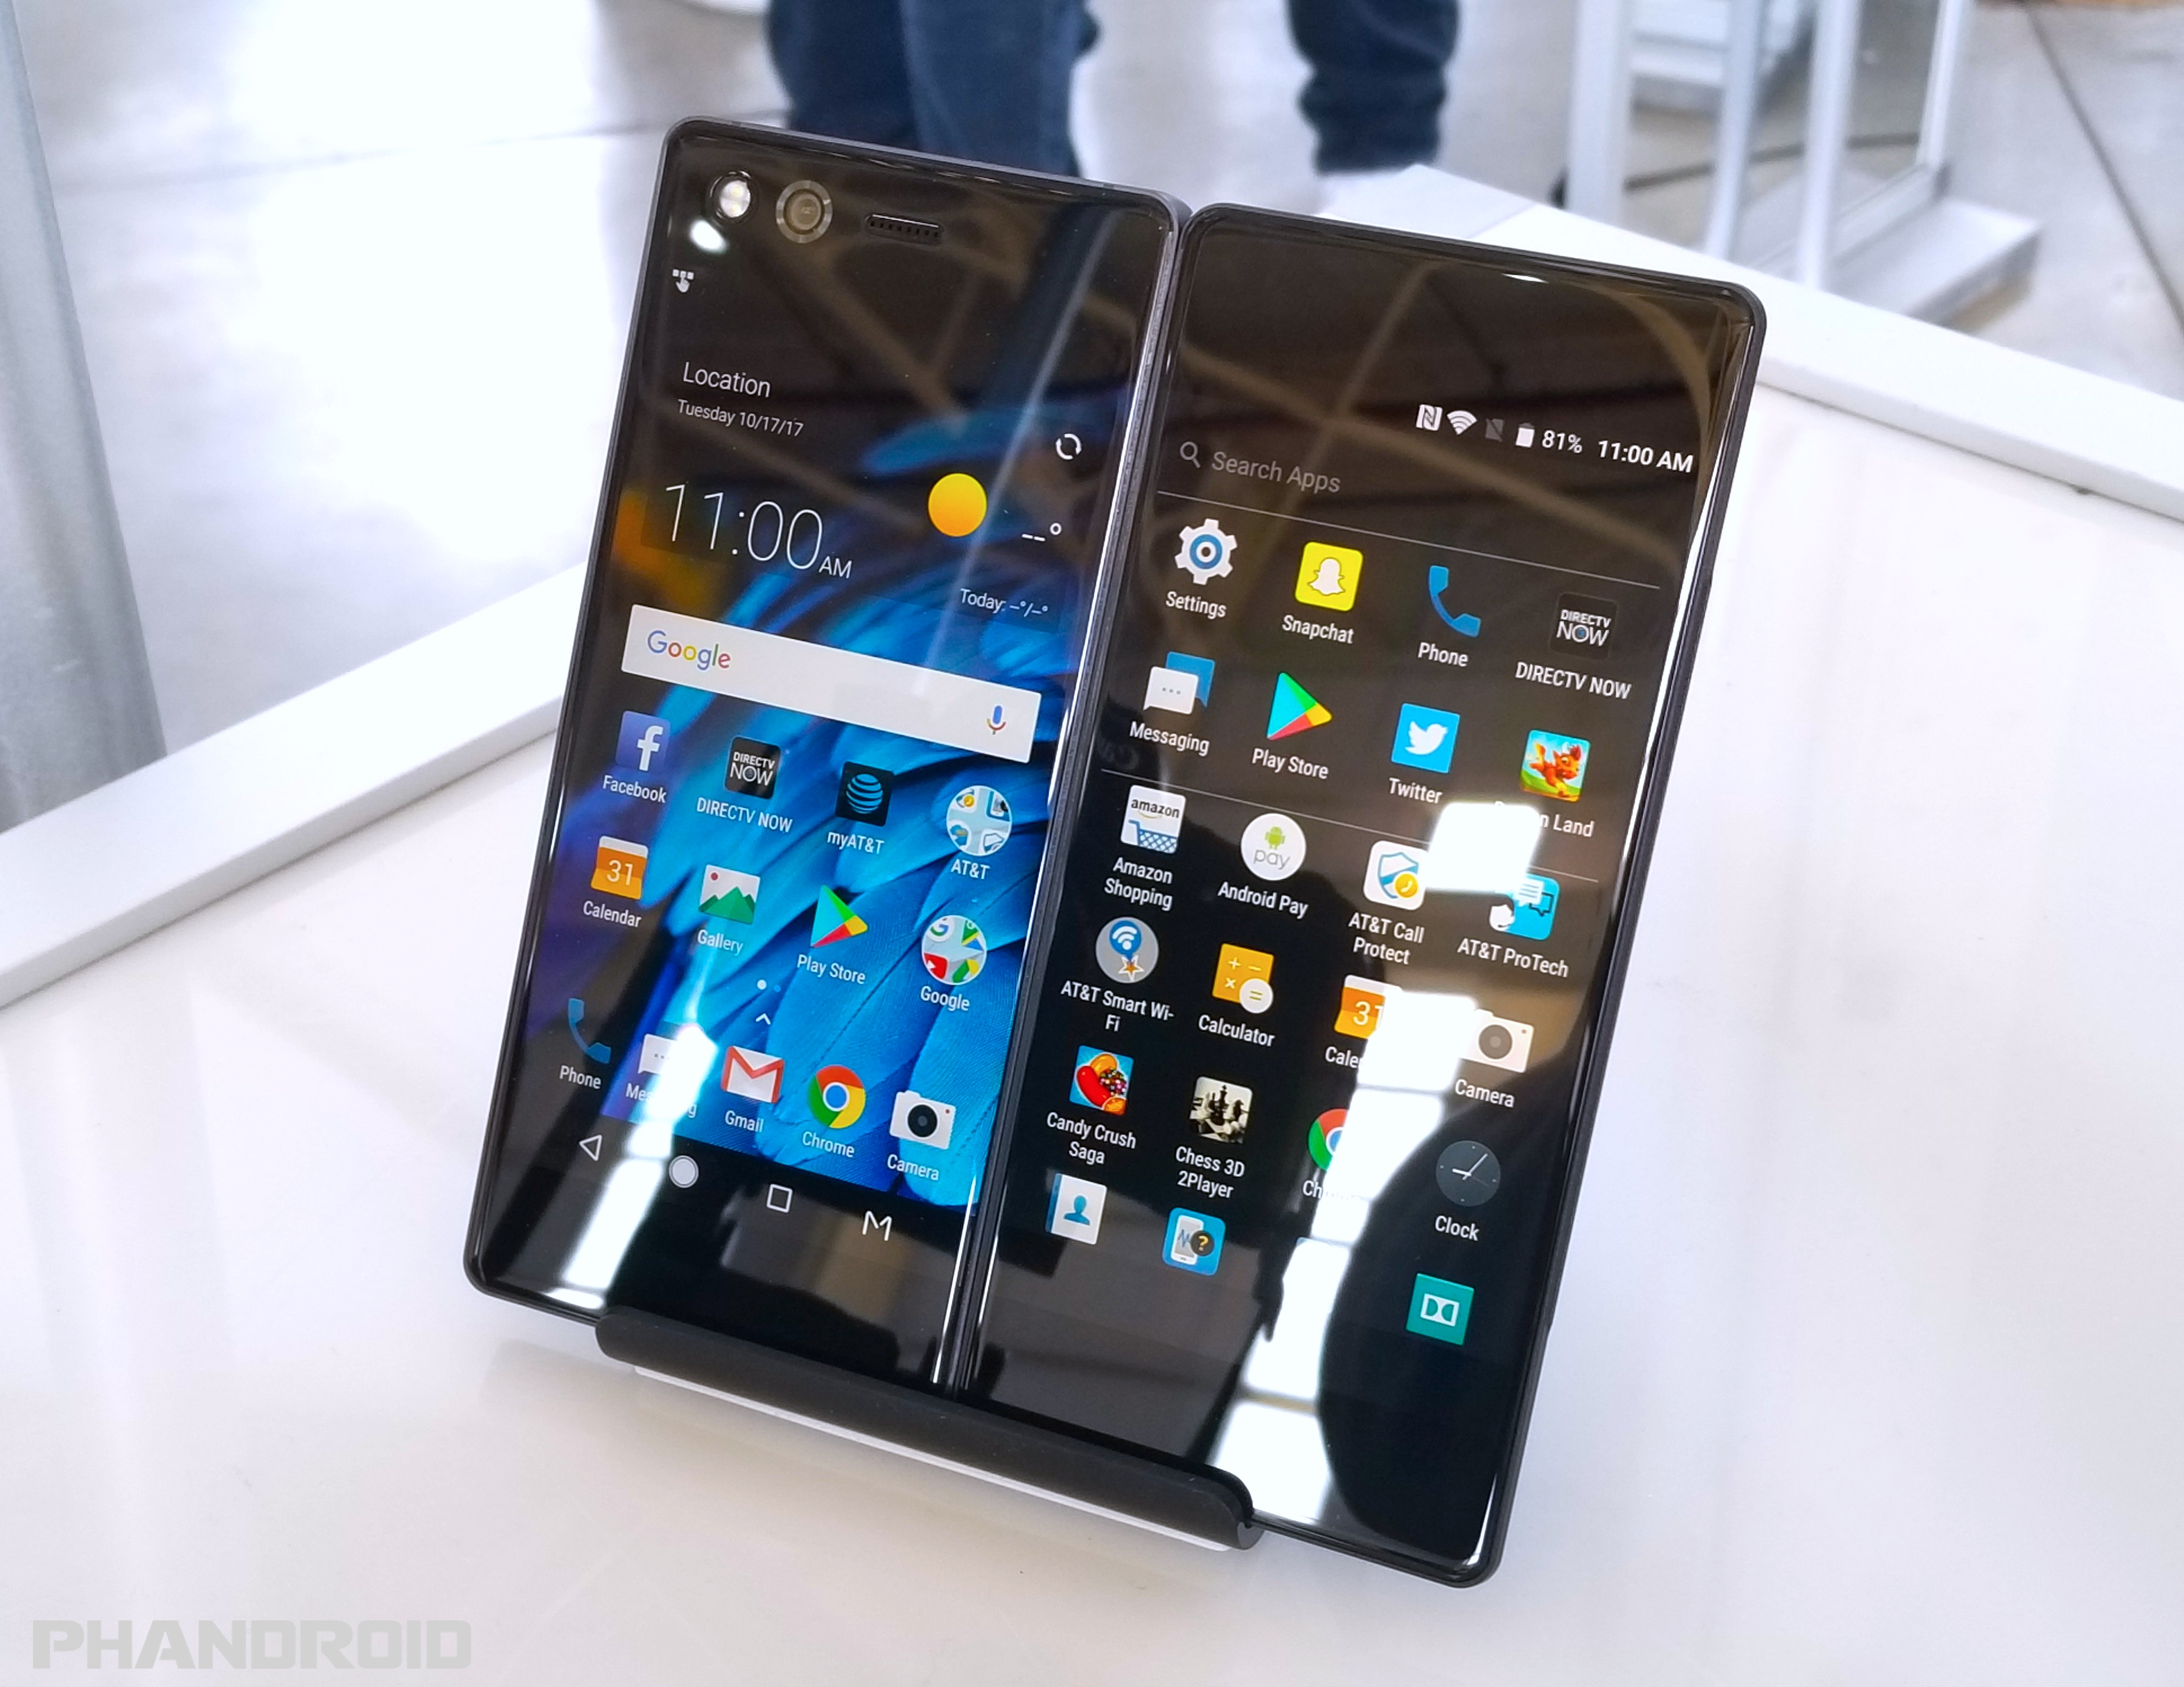 ZTE Axon M is a foldable smartphone with 2 screens